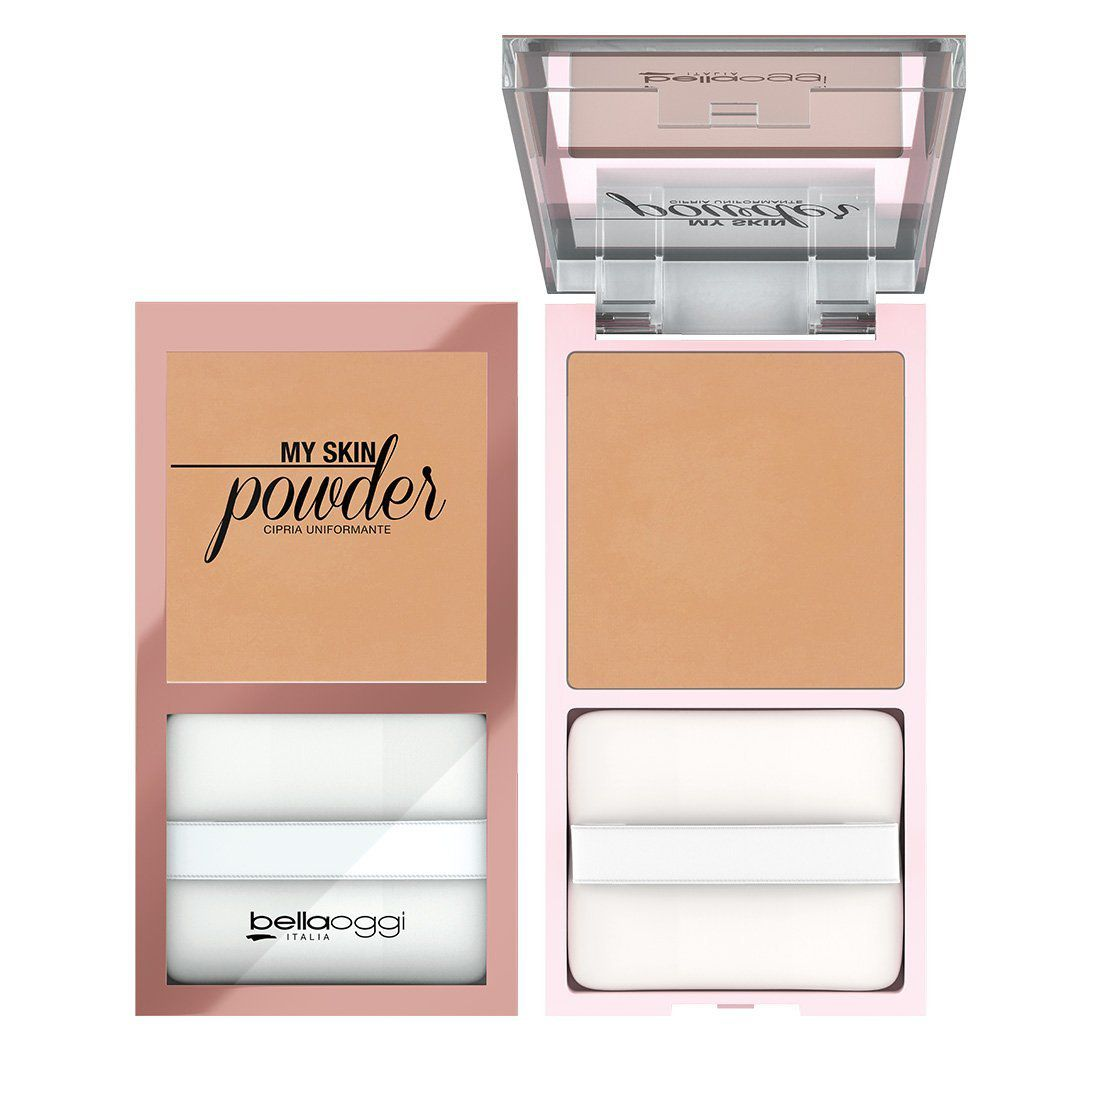 CIPRIA BELLA OGGI MY SKIN POWDER 04 SUNSET TOUCH C4